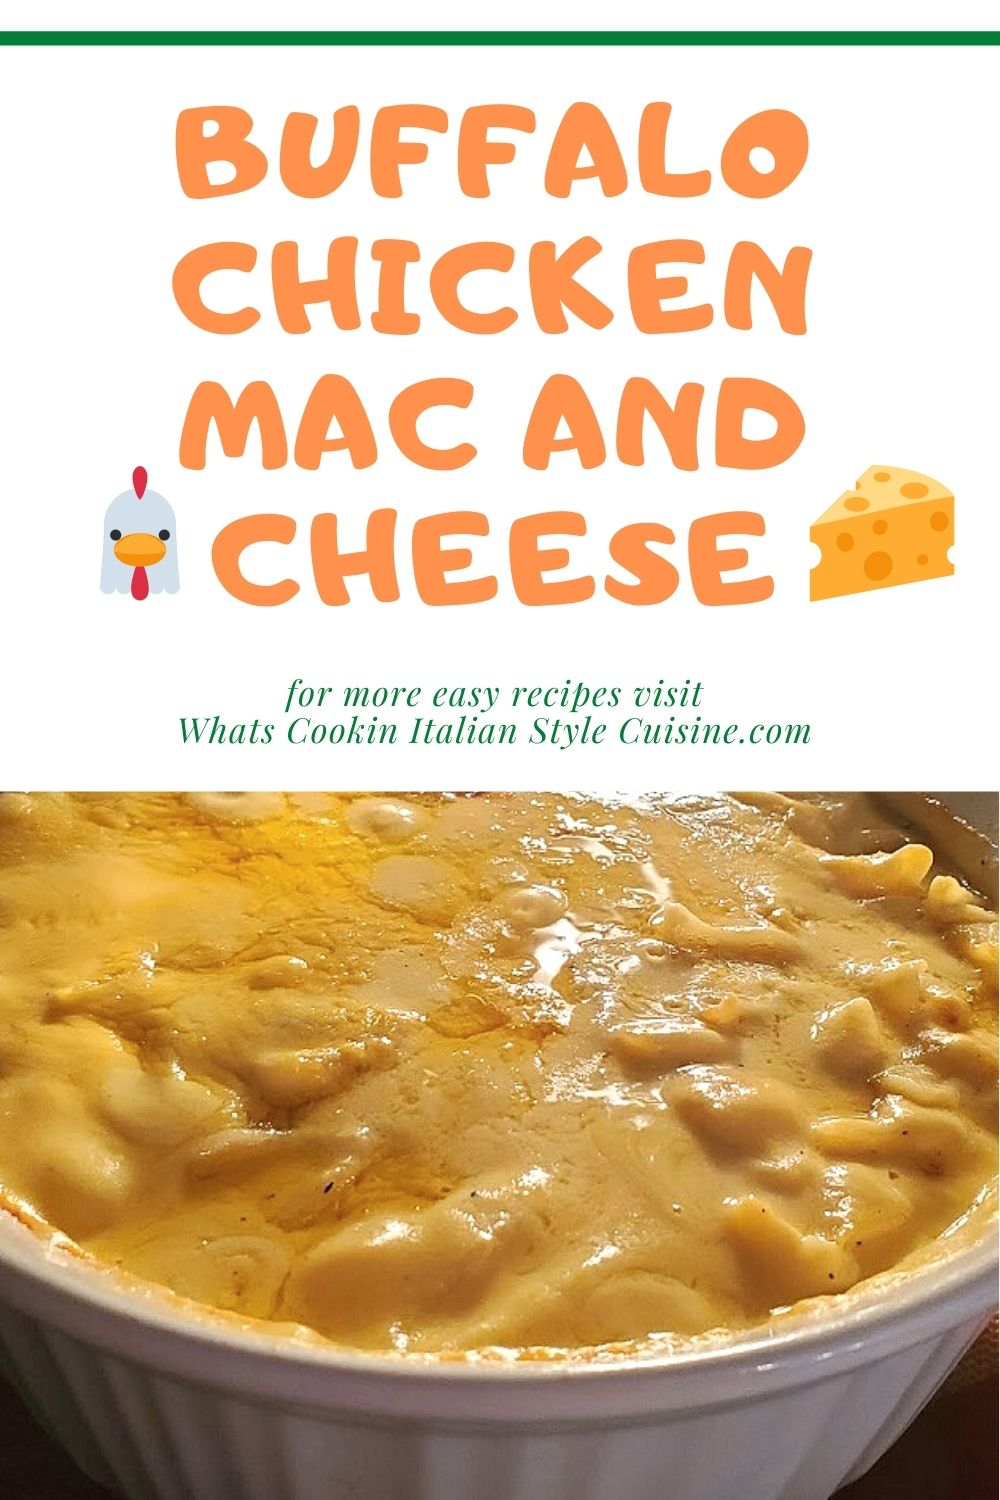 Pin for later casserole with buffalo chicken cheese and pasta